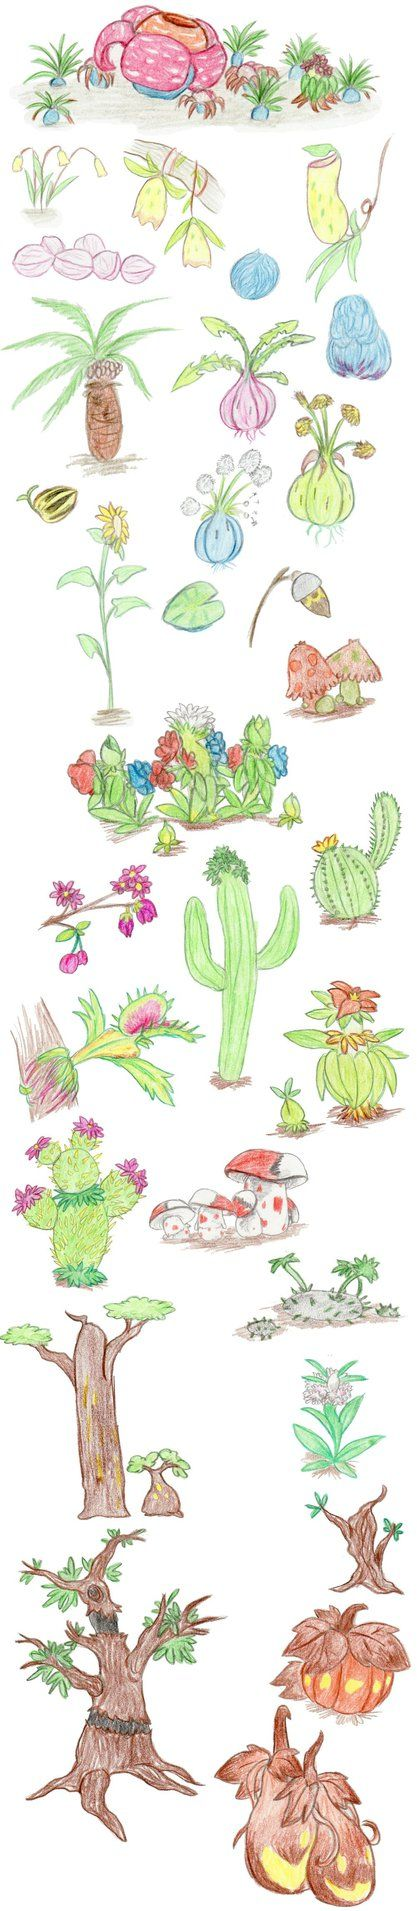 Plant Pokemon by DragonlordRynn on DeviantArt